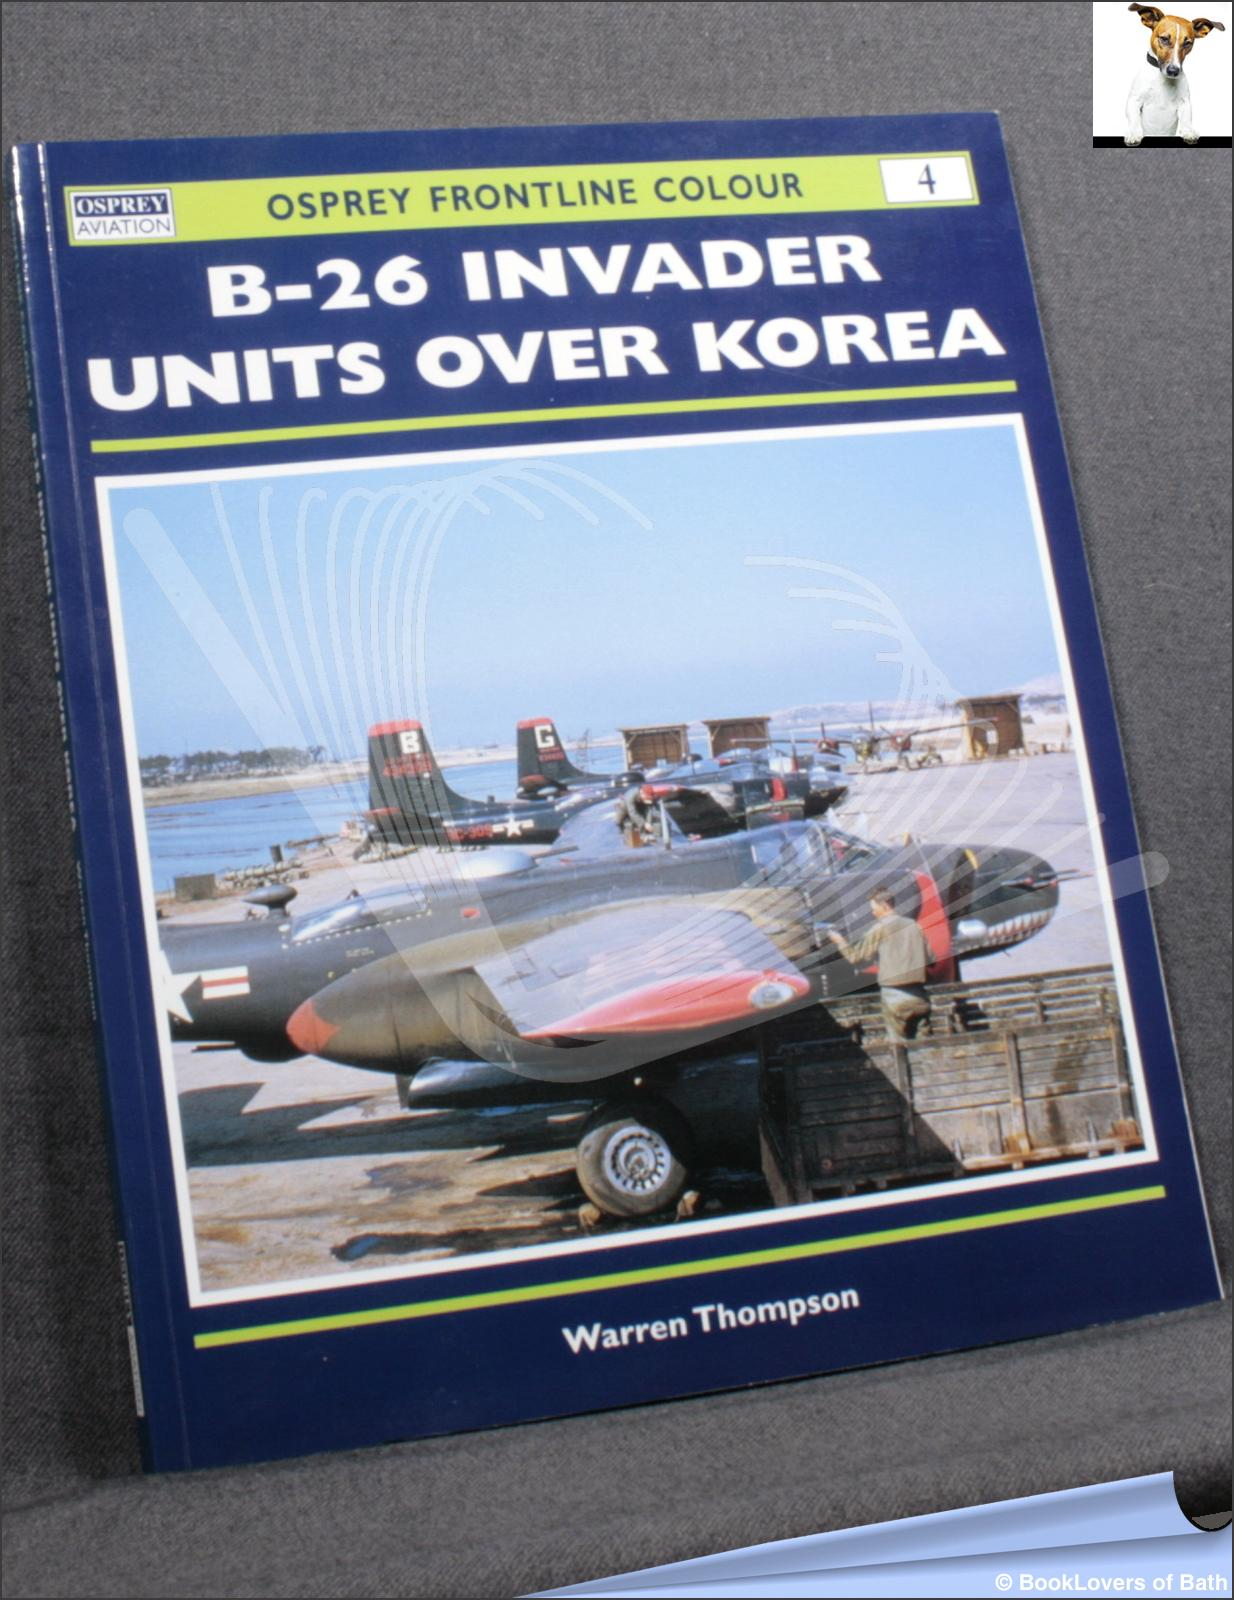 B-26 Invader Units Over Korea Series - Warren Thompson